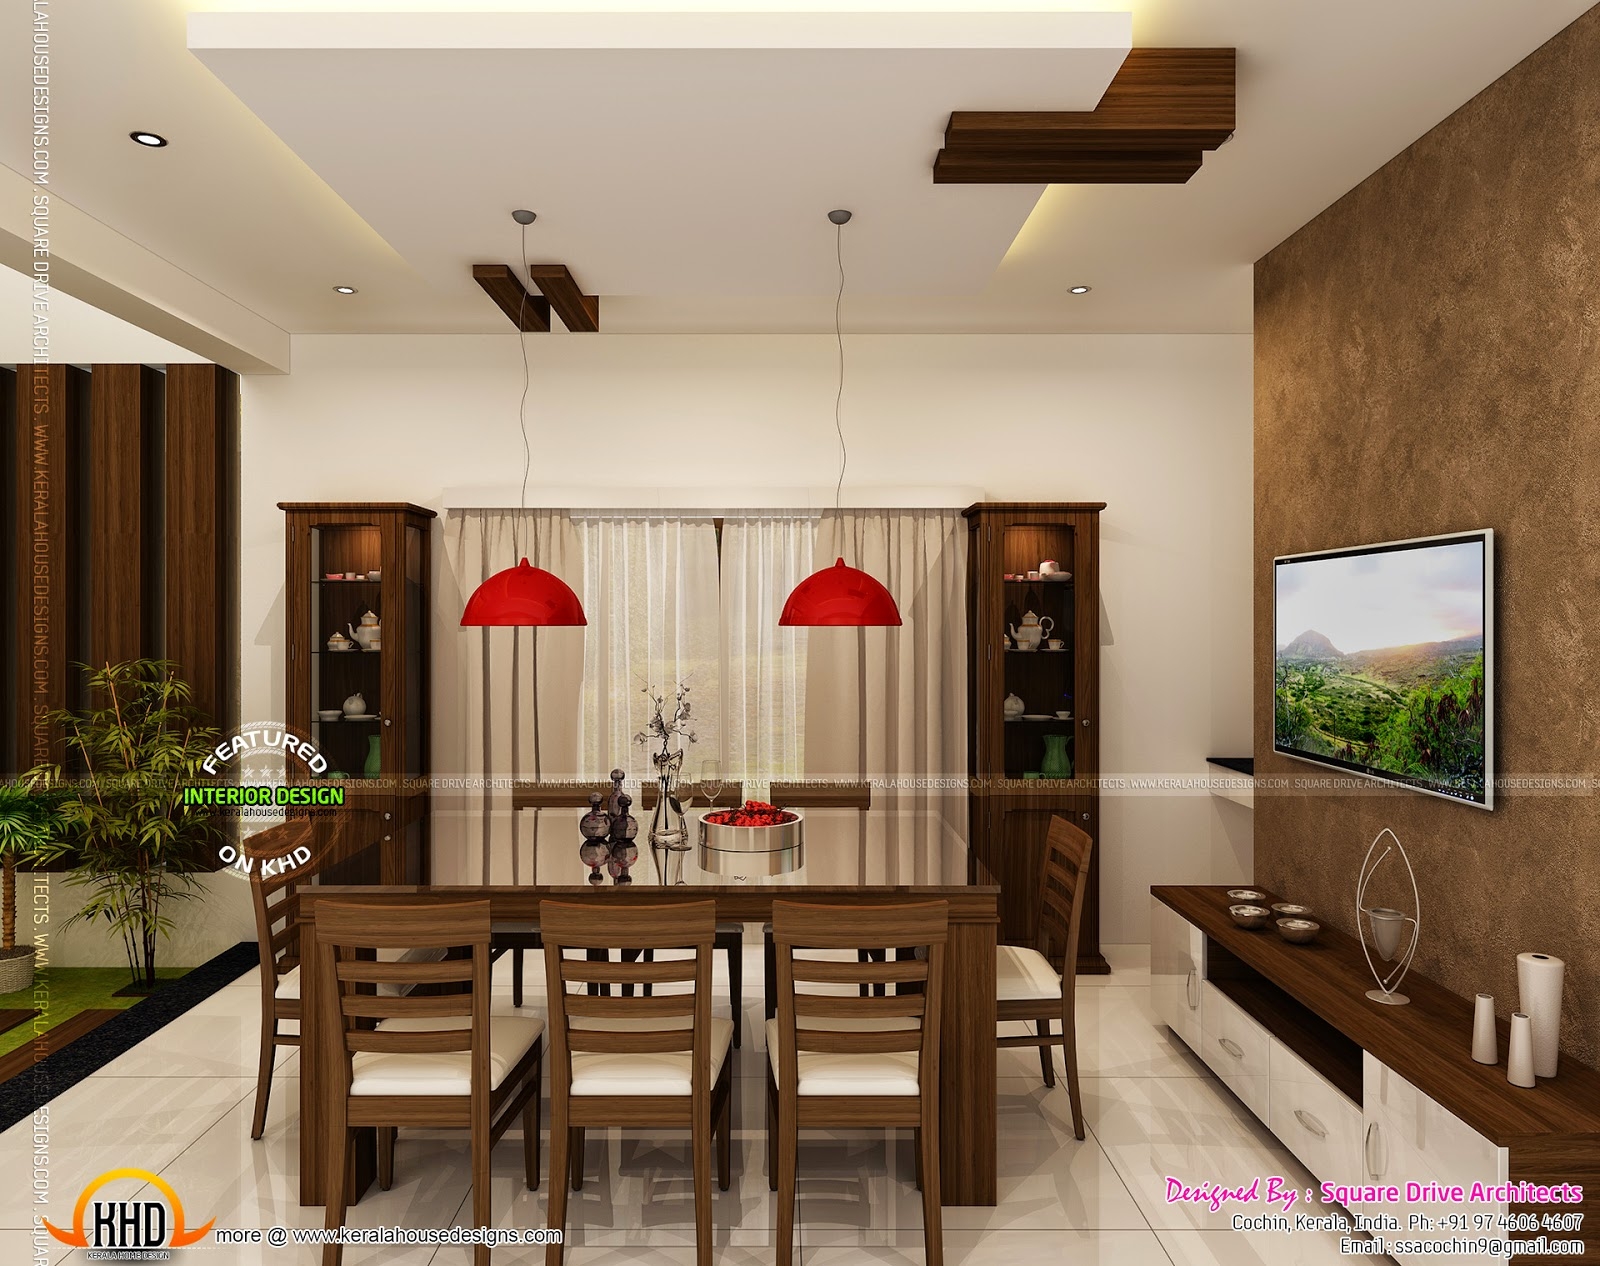 Home interiors designs kerala home design and floor plans for Dining room interior images